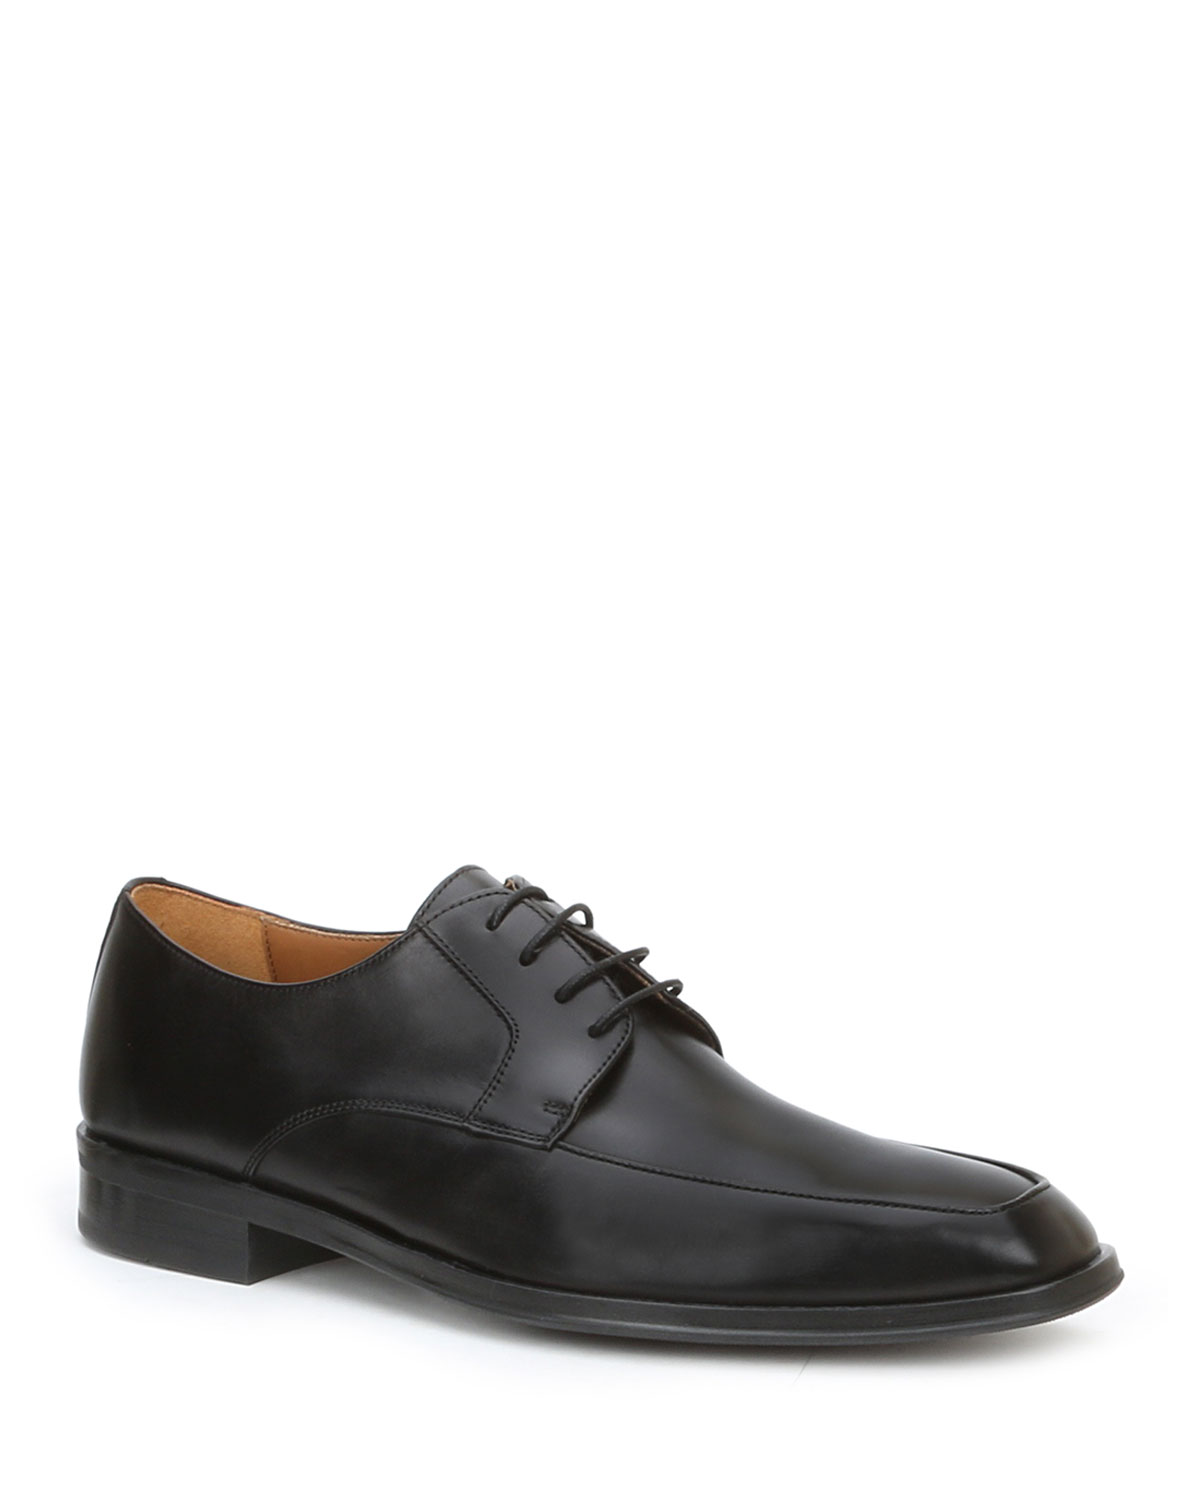 Bruno Magli Men's Novaro Leather Lace-Up Shoes